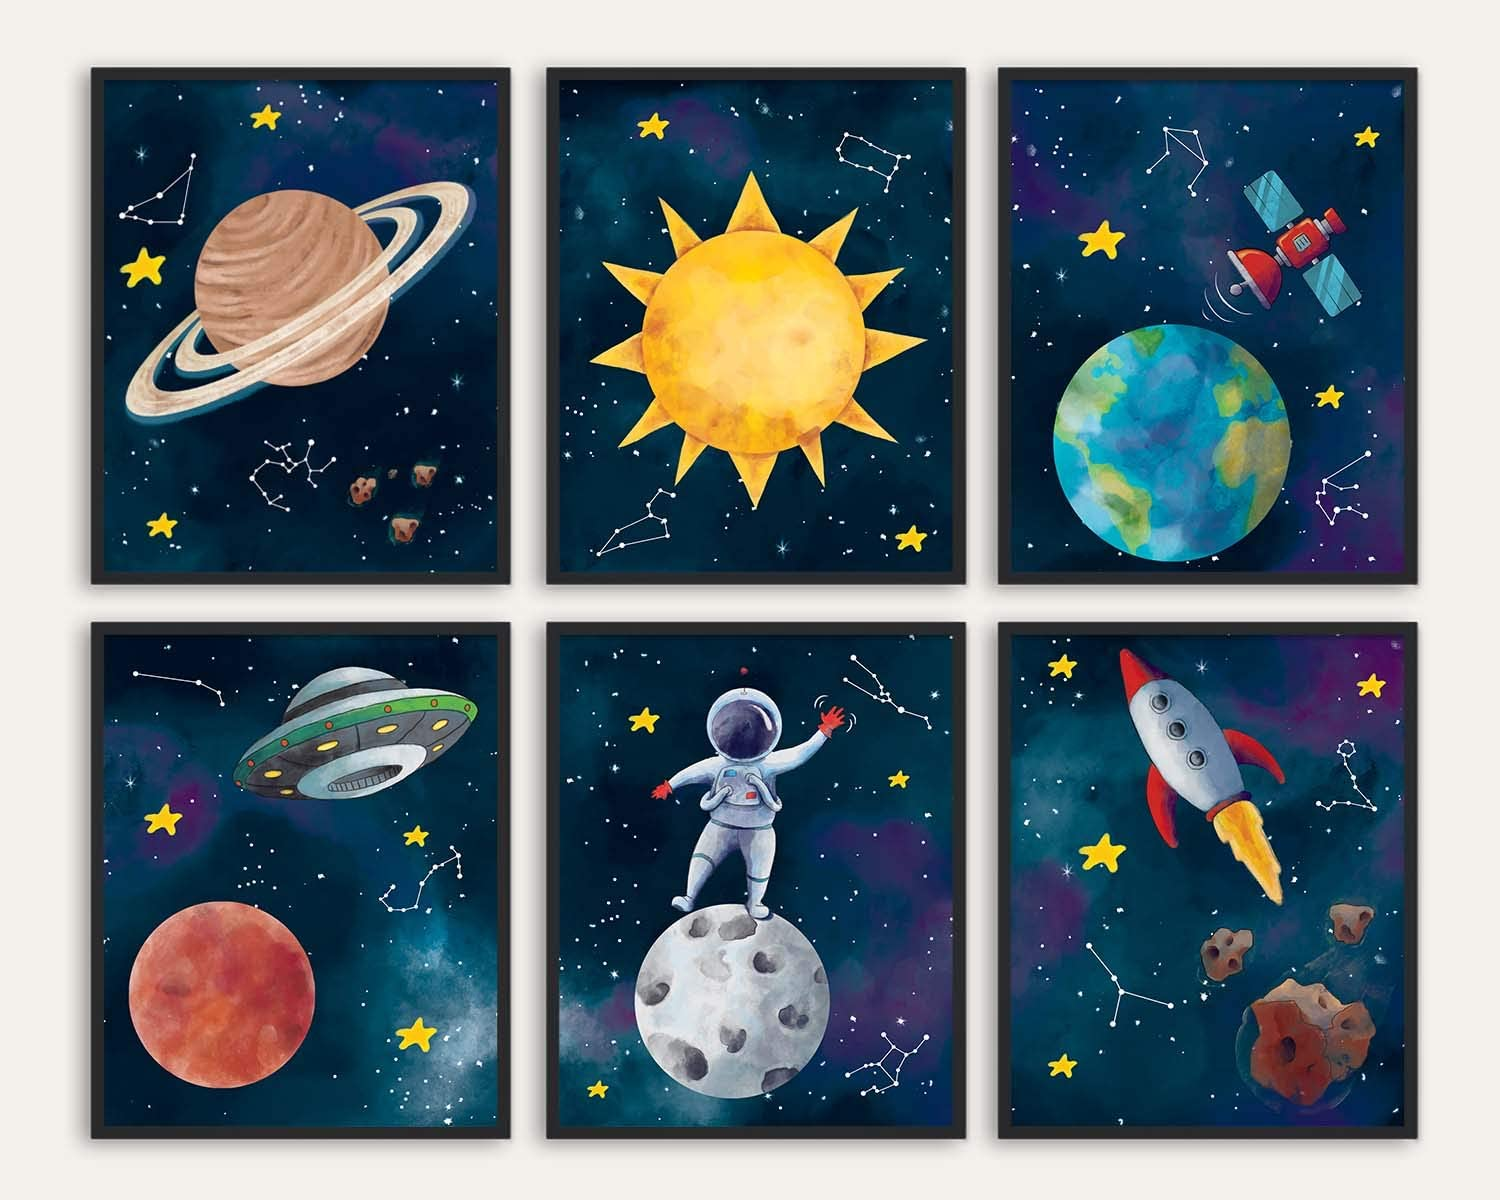 Space Themed Bedroom Decor - 8x10 Inches Unframed Set of 6, Sun, Earth, Planet, Star, Rocket, Astronaut, Outer Space Room Decor, Space Decorations For Kids Room, Space Poster, Space Wall Decor